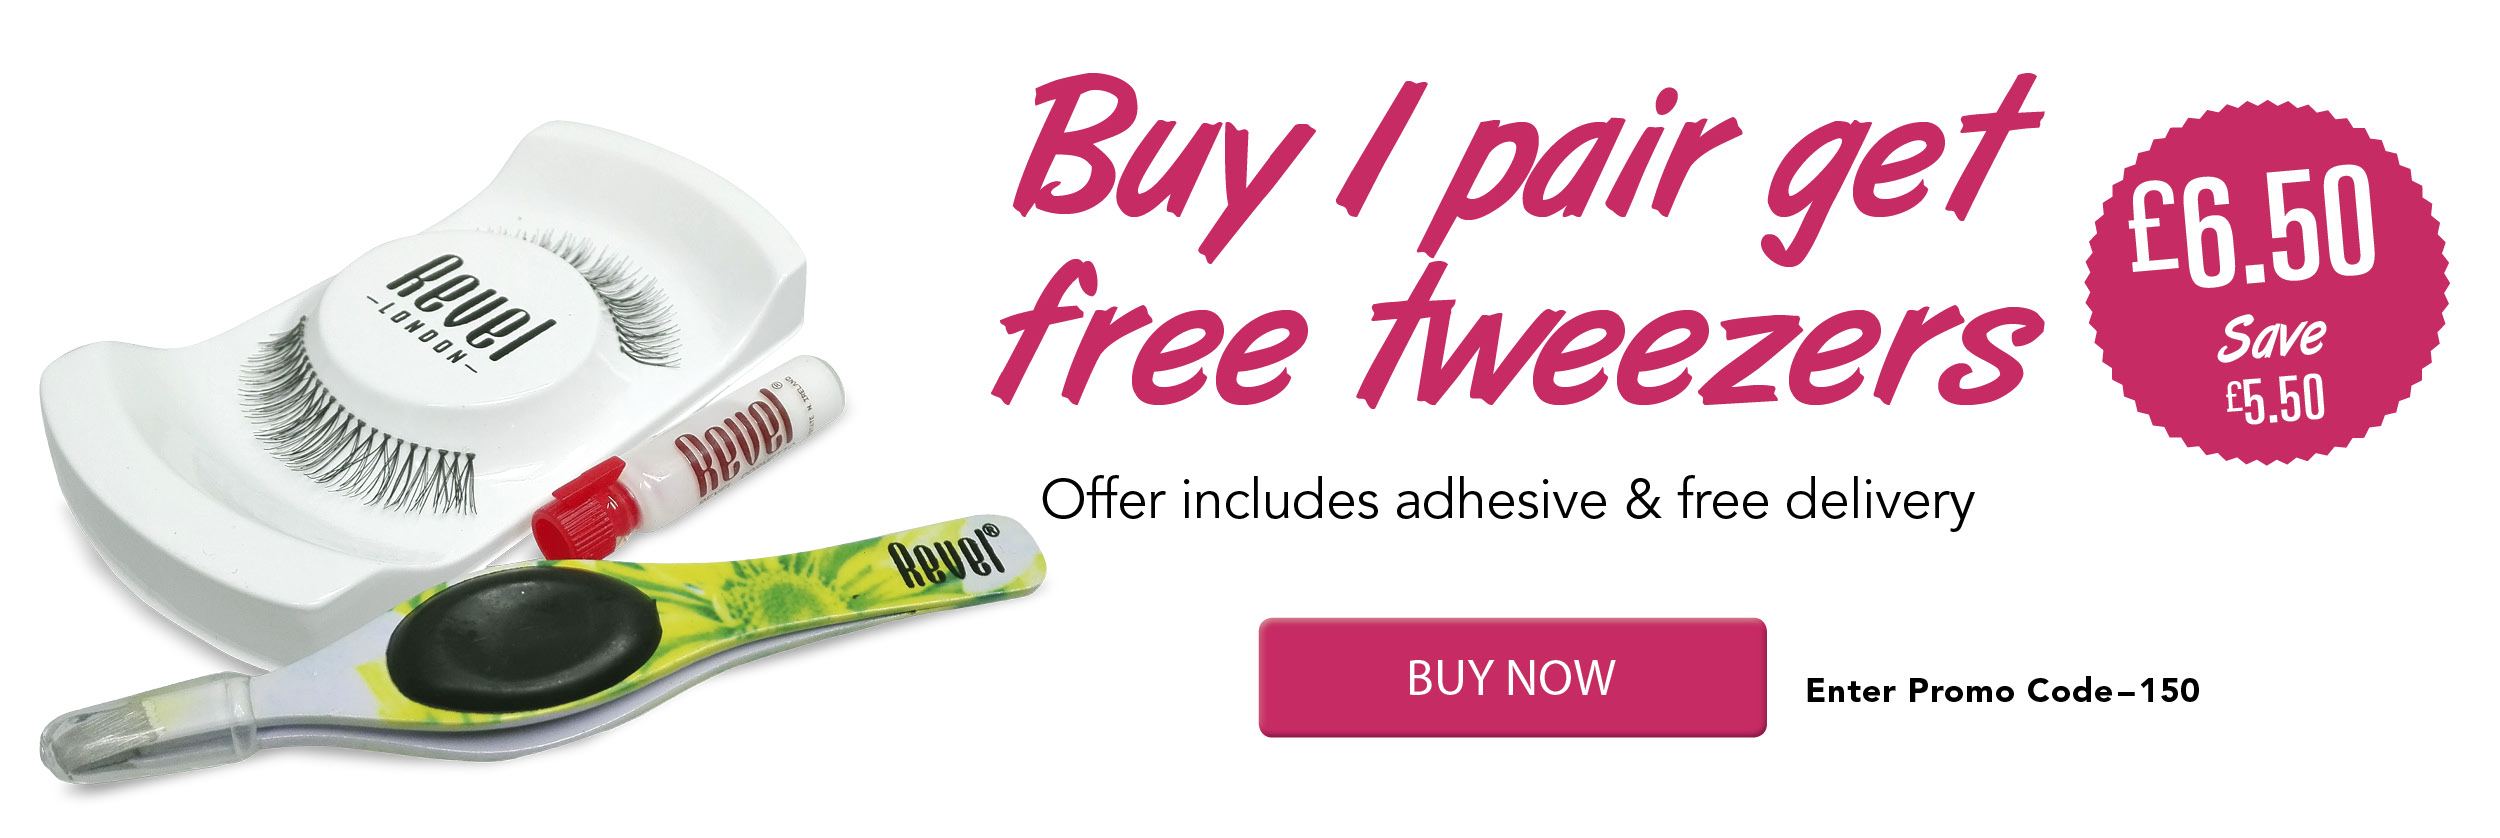 306455d5bfe Order a pair of strip lashes for only £6.50, offer includes adhesive, 1 free  tweezer & free delivery. While stocks last.Check out using Promo code:150.